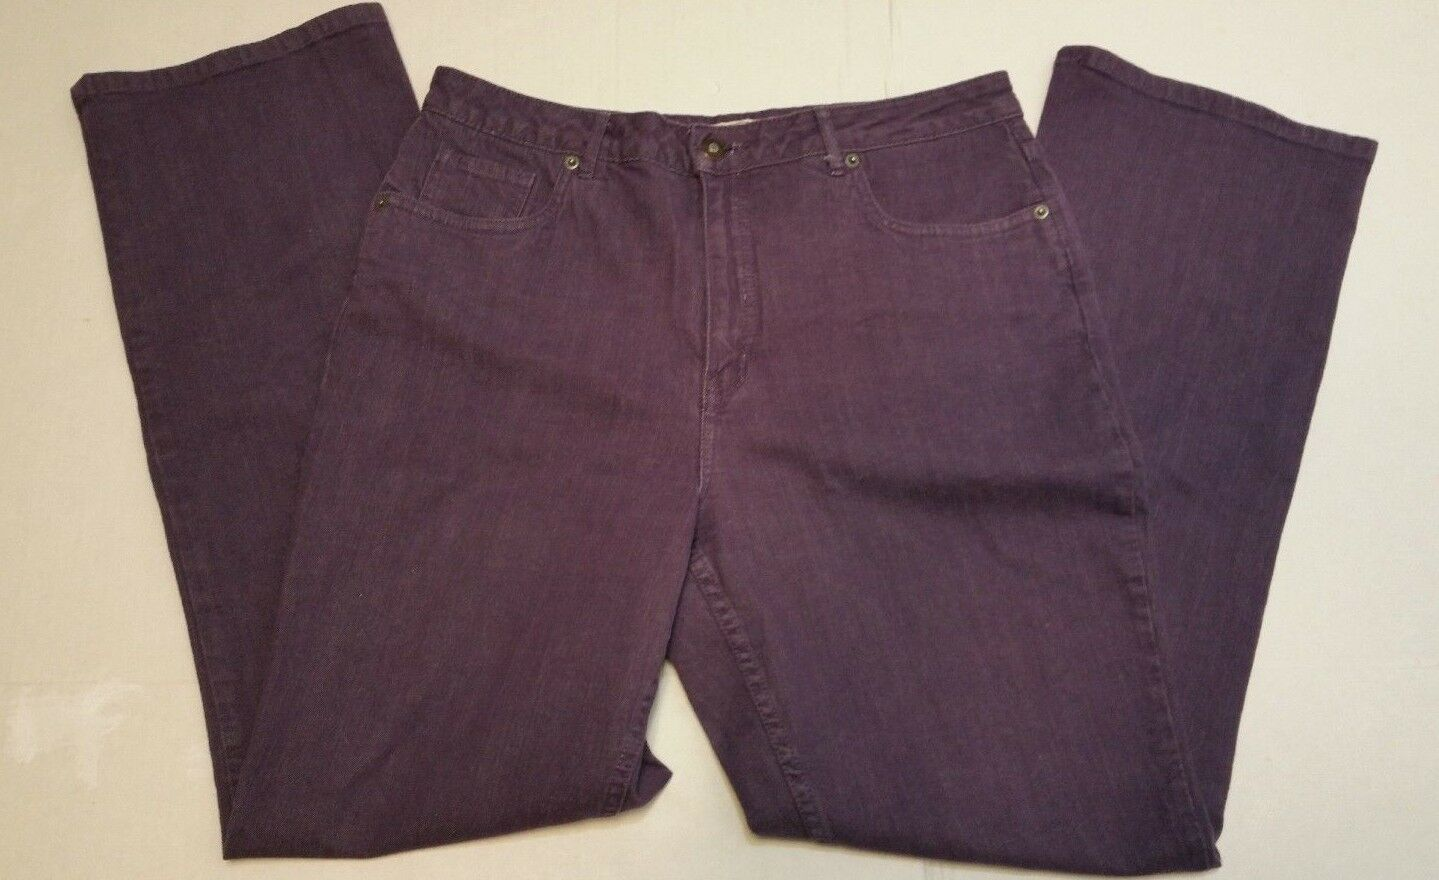 Coldwater Creek Purple Denim Jeans Pants Womens Size 16 Boot Cut Size 12 L31